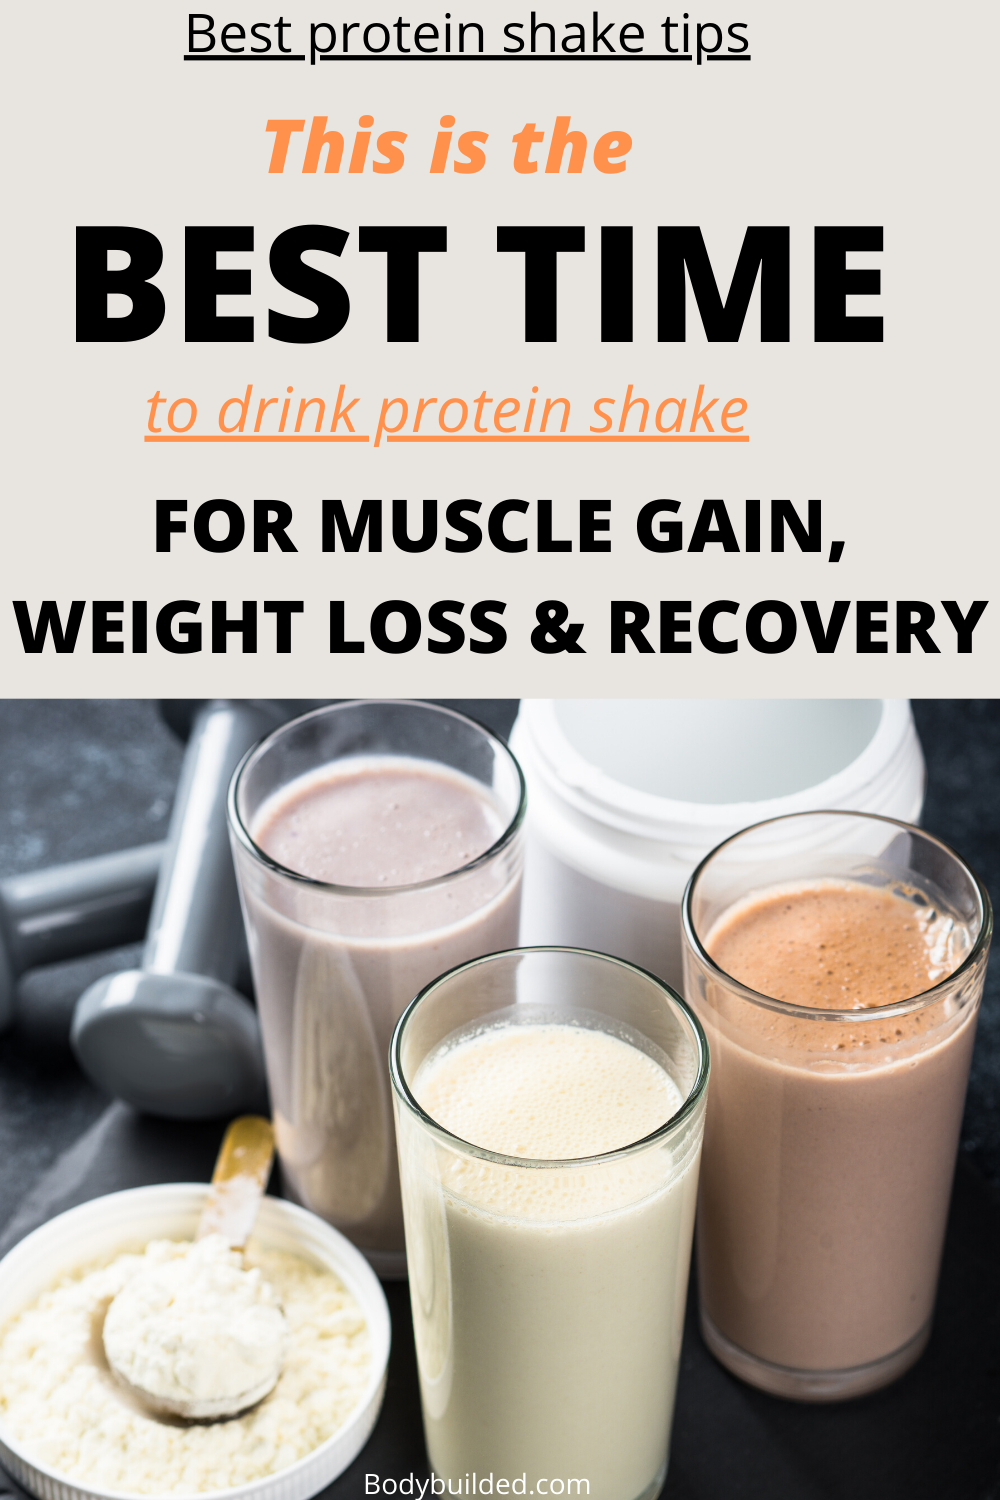 Protein Shake Before Or After A Workout Healthy Diy Protein Shake Recipes For In 2020 Healthy Protein Shakes Healthy Protein Shake Recipes Whey Protein Recipes Shakes